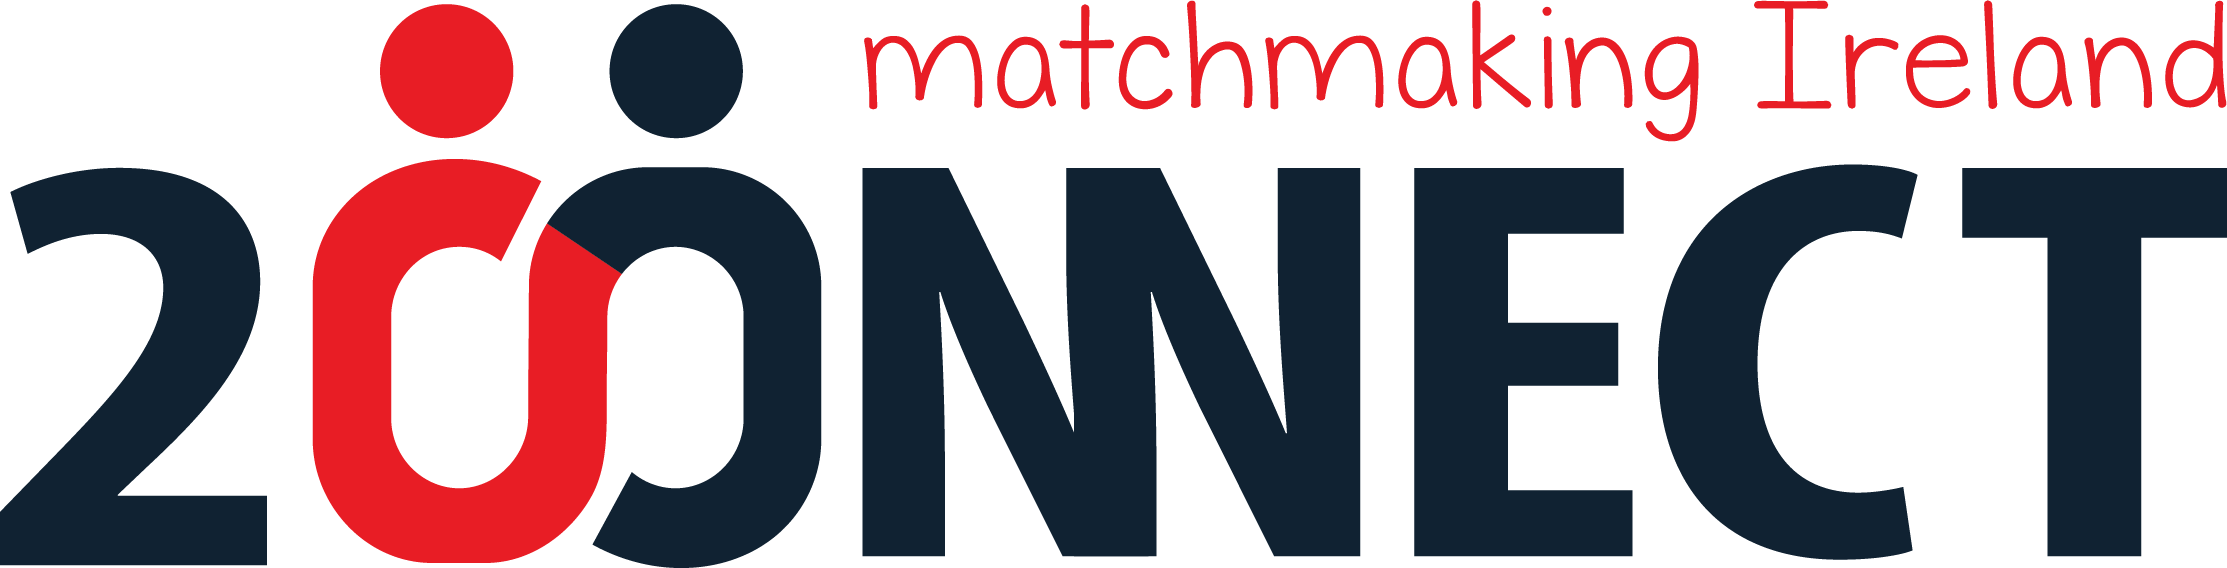 2CONNECT Matchmaking Stories - uselesspenguin.co.uk